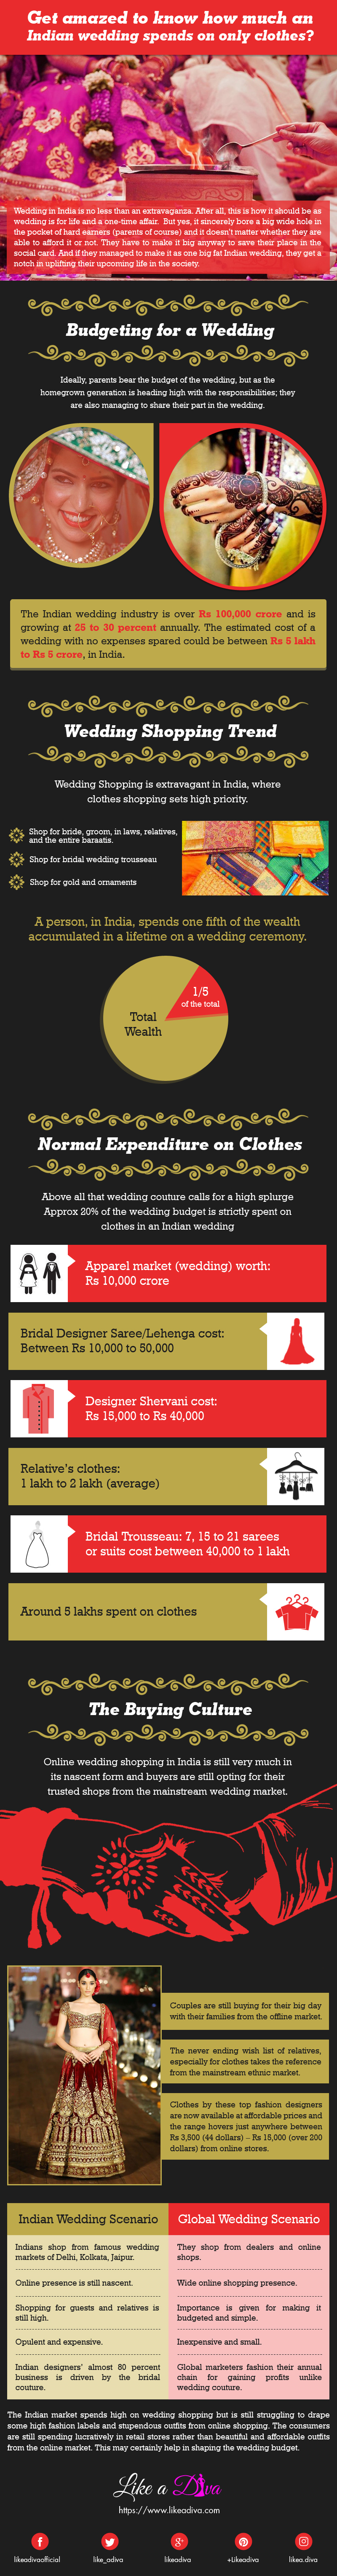 Weddings in India [Infographic]